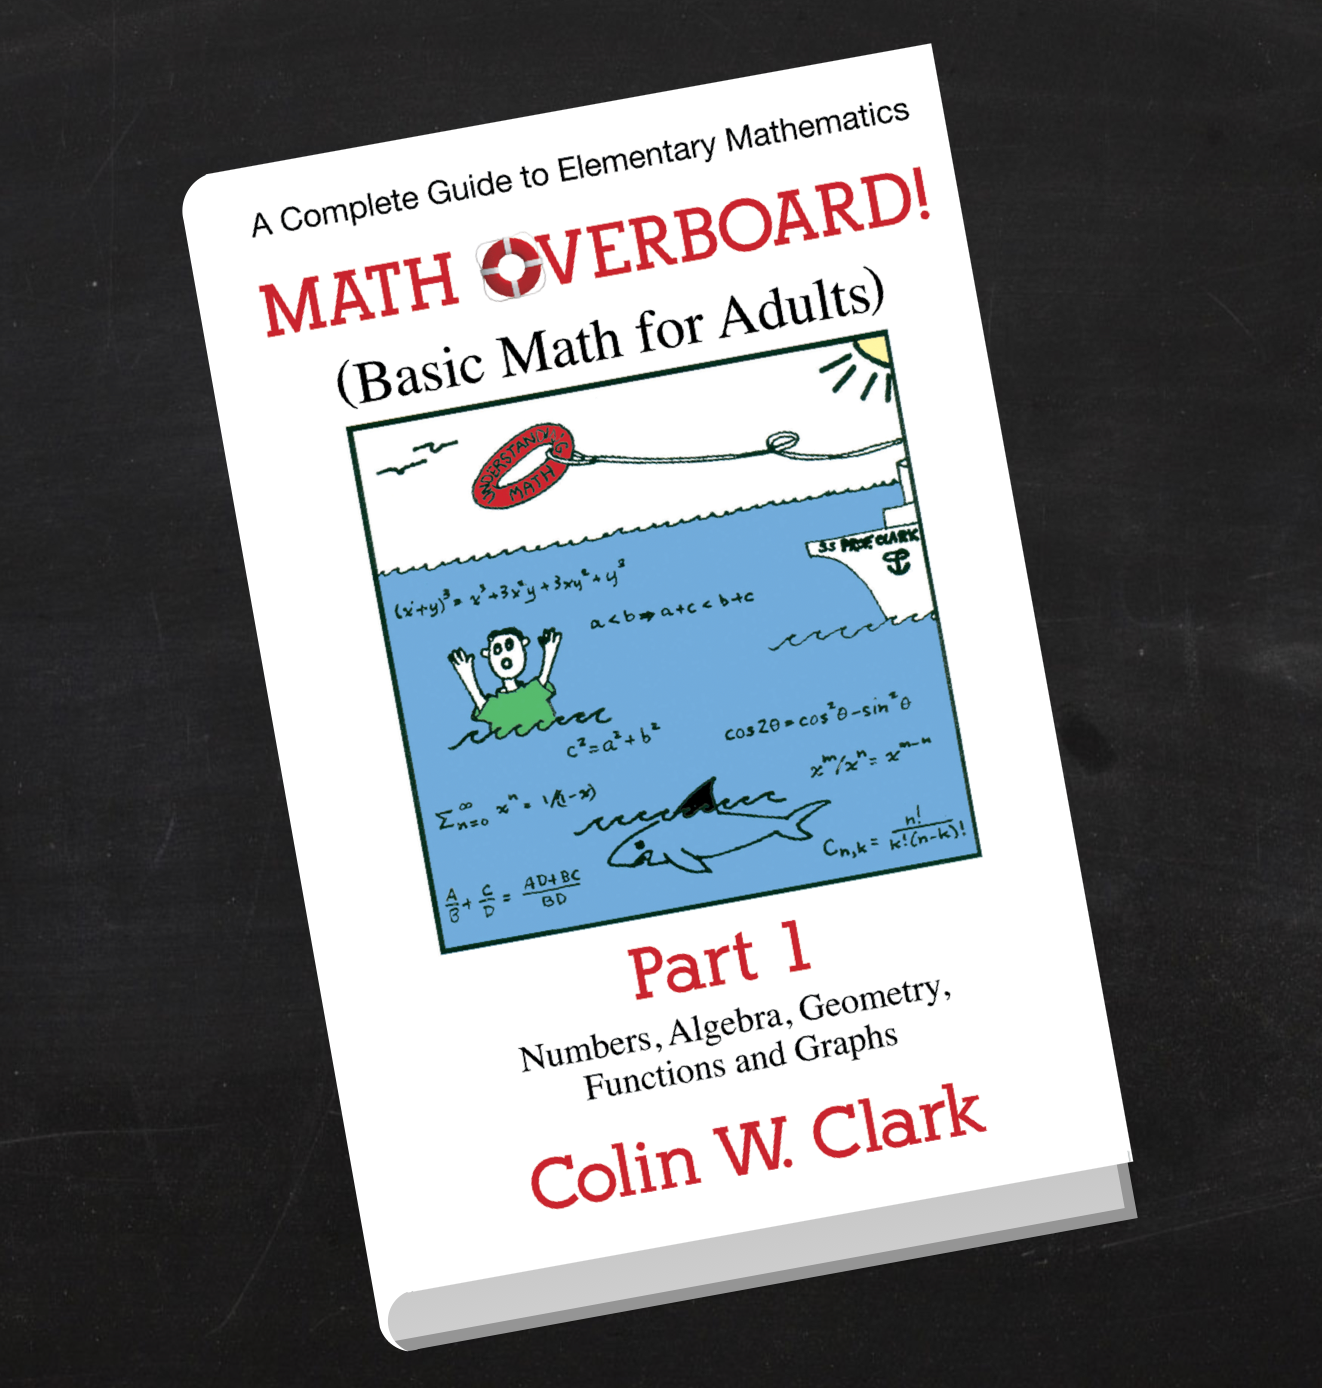 Worksheet Learn How To Do Math rwdevcon inspiration talk math isnt scary by matthijs hollemans i used it to brush up on my high school mathematics a little while ago its not perfect but lot more acc